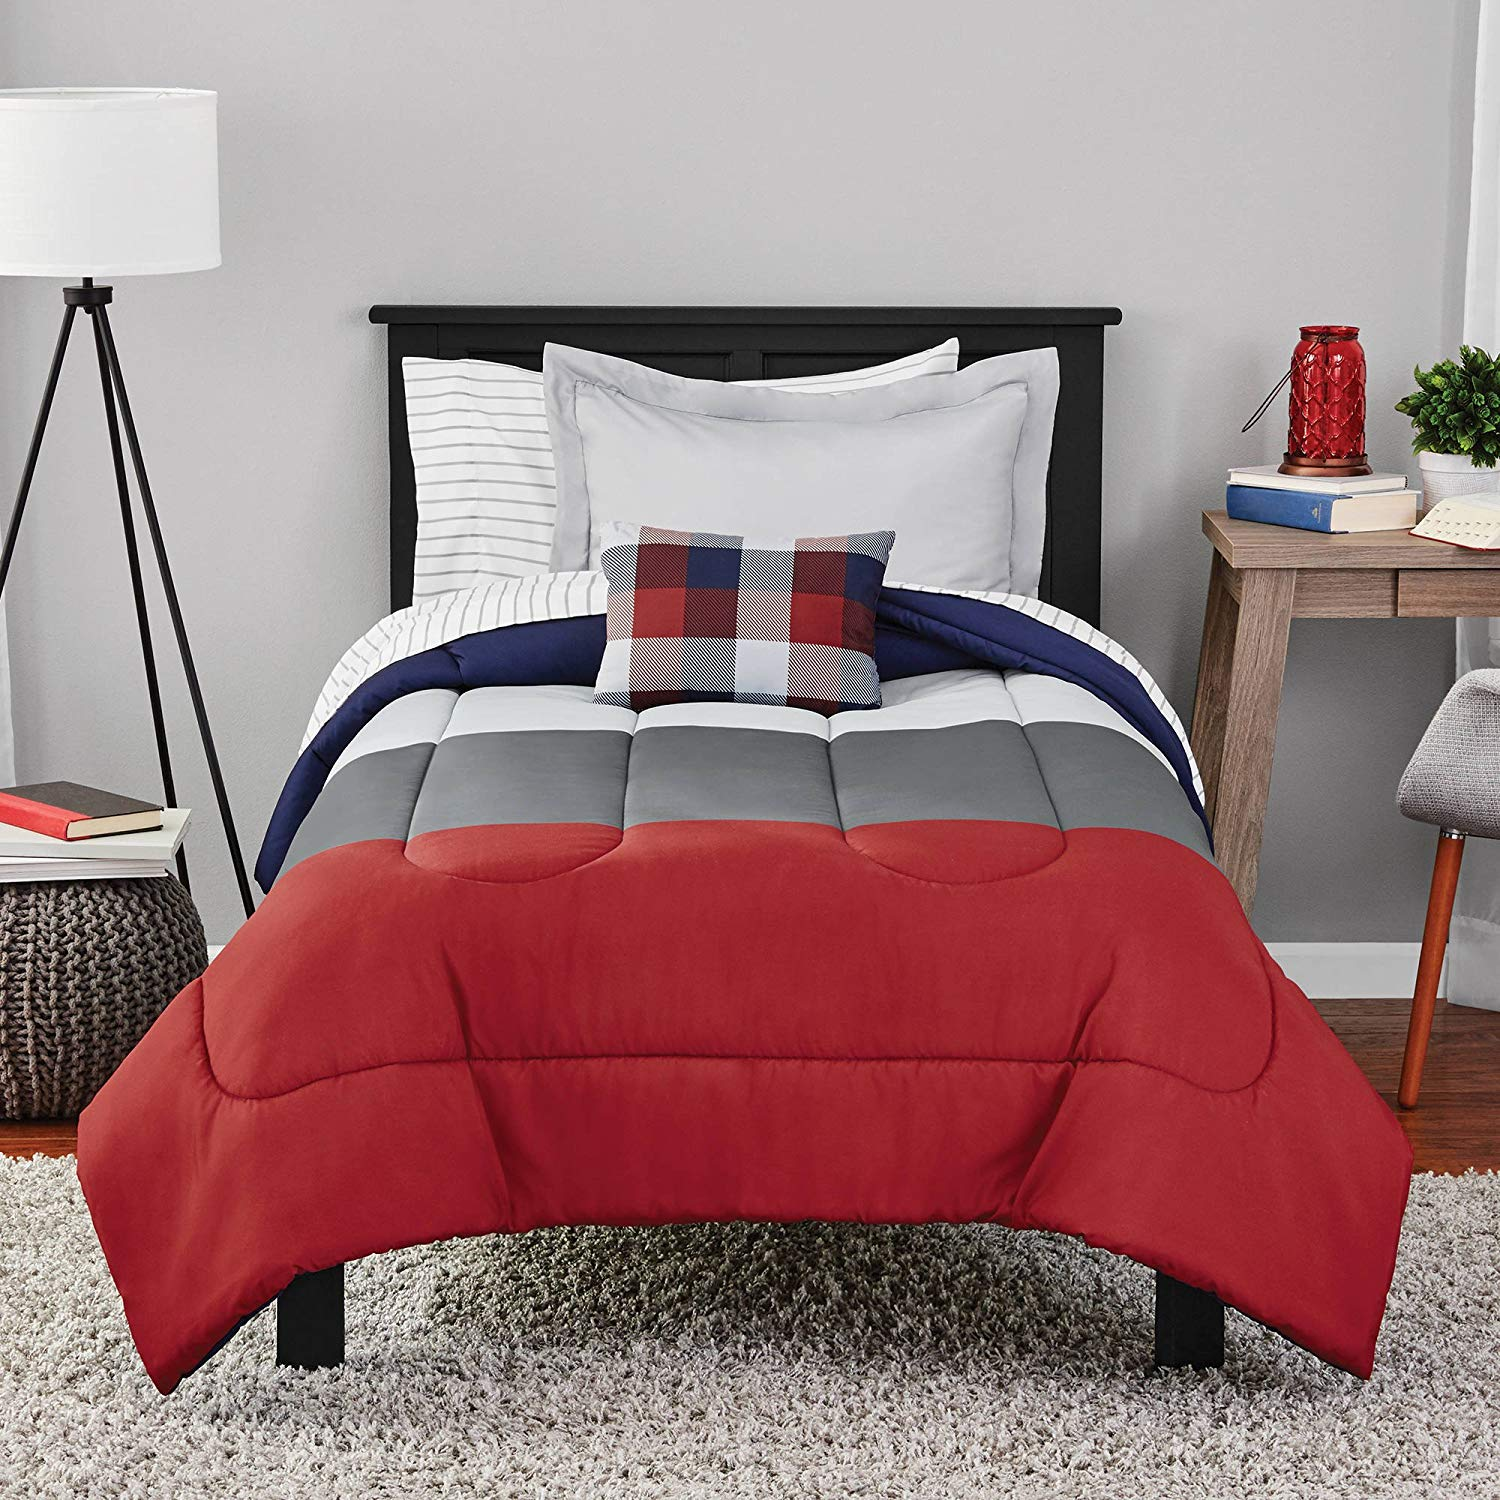 CA 8 Piece Red Grey Blue Colorblock Comforter Queen Set, Patriotic Themed Bedding Block Stripe Pattern Texan Colors USA Gray Silver Stripes Block United States America Design Plaid Pillow, Polyester